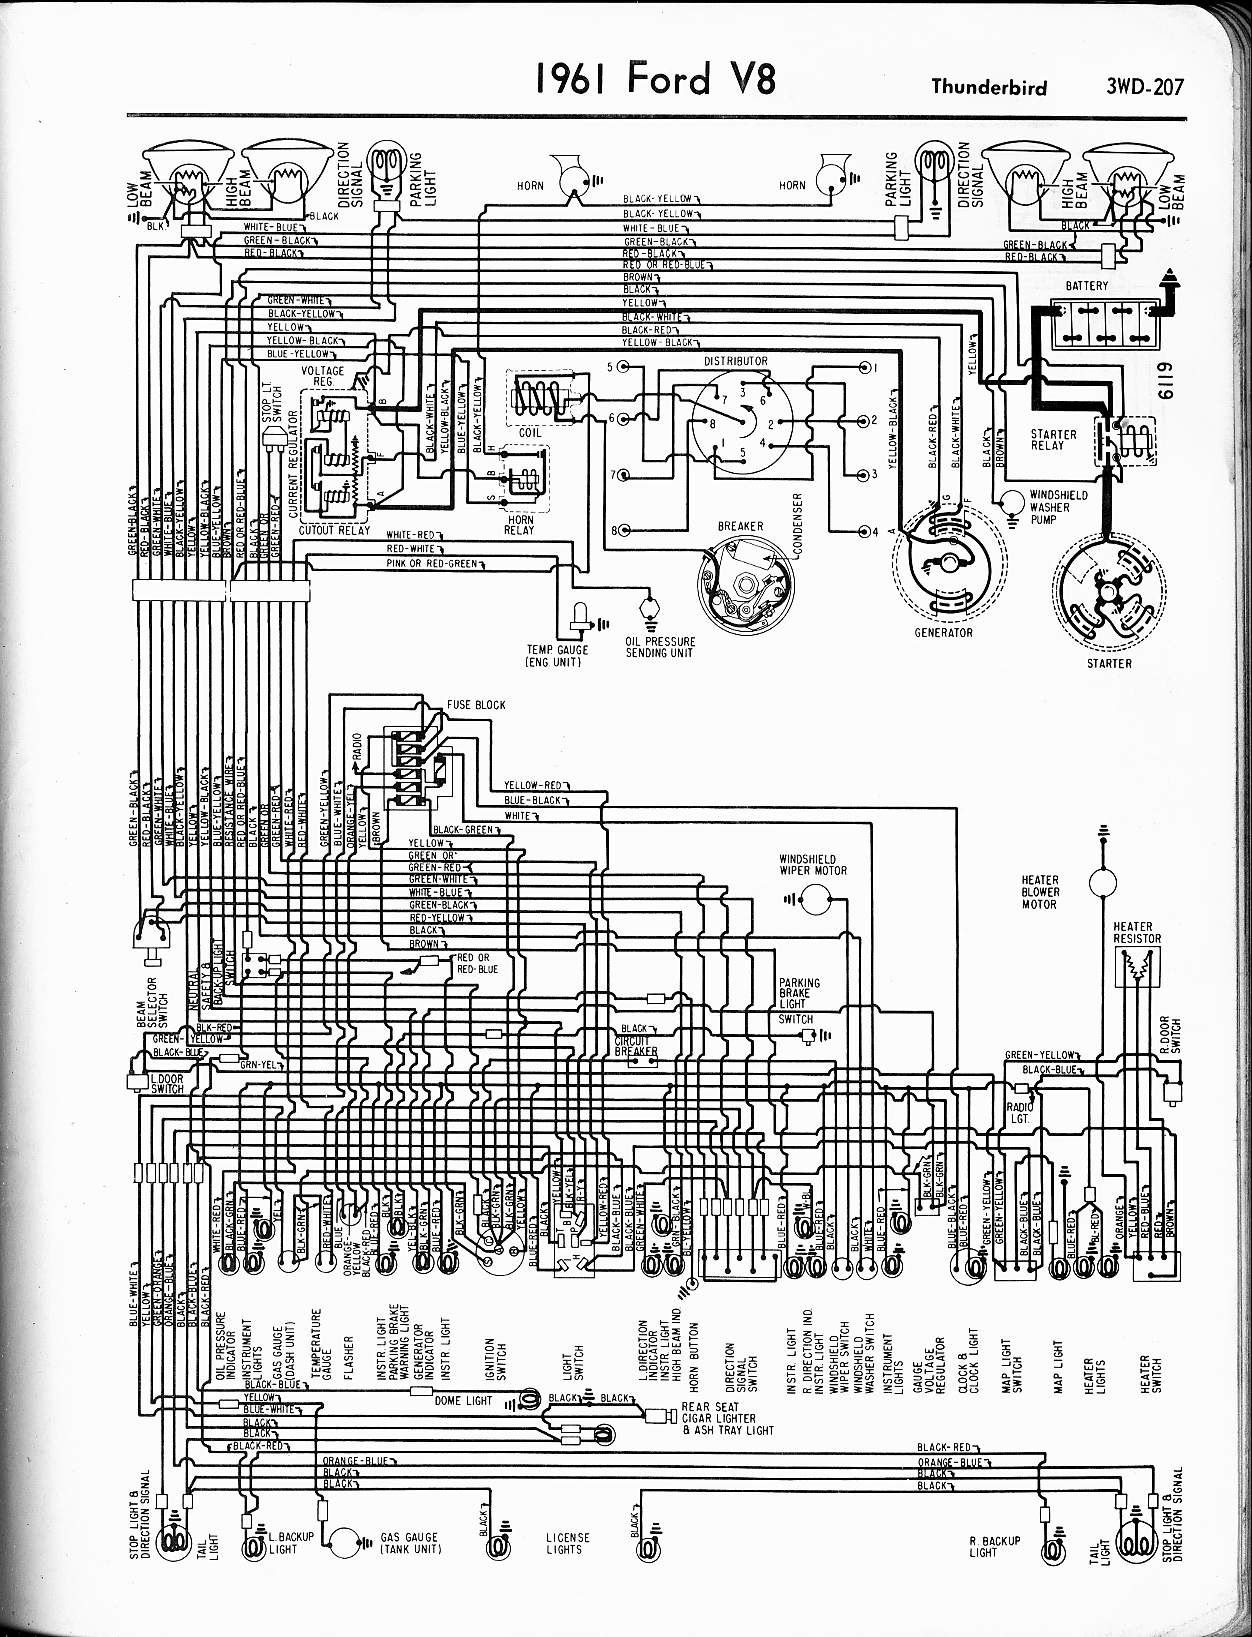 1961 ford truck wiring diagrams wiring diagram todays61 ford truck wiring wiring diagram todays 1979 ford truck wiring diagram 1961 ford truck wiring diagrams